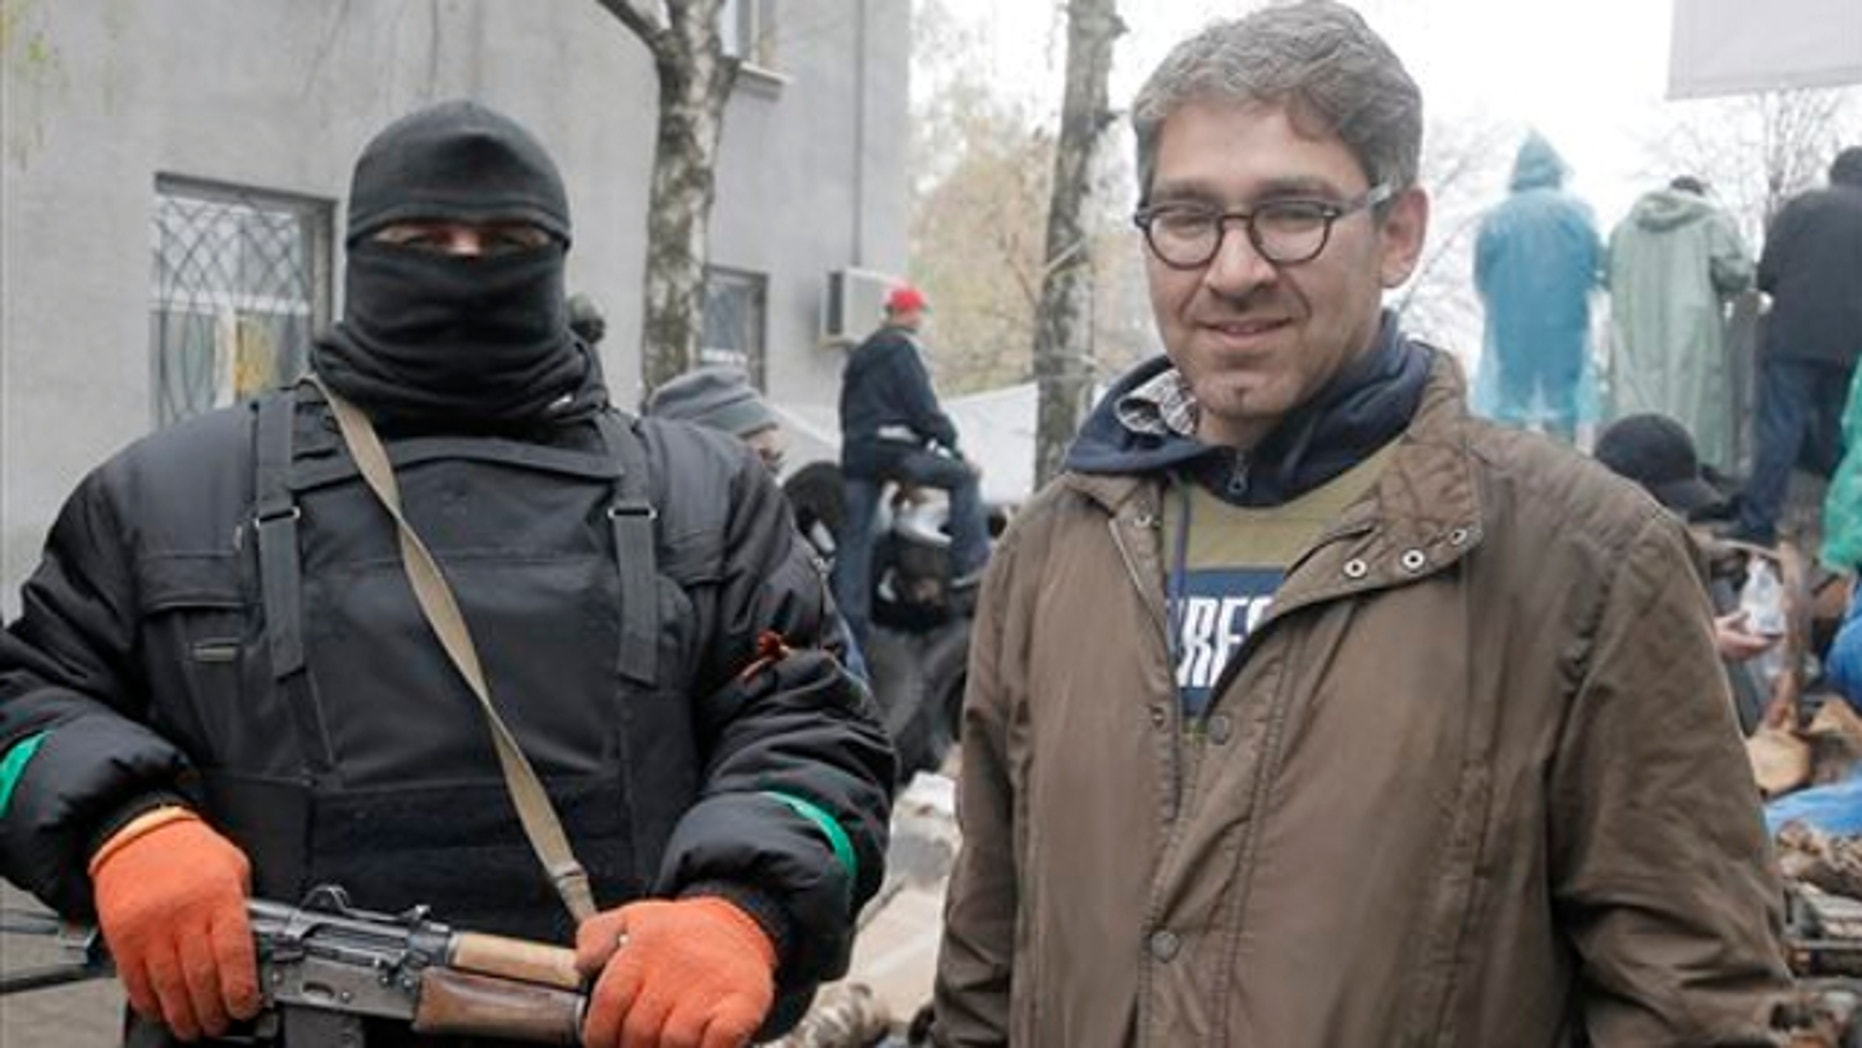 April 13, 2014: A reporter Simon Ostrovsky, right, stands next to a Pro-Russian gunman at a seized police station in the eastern Ukraine town of Slovyansk.